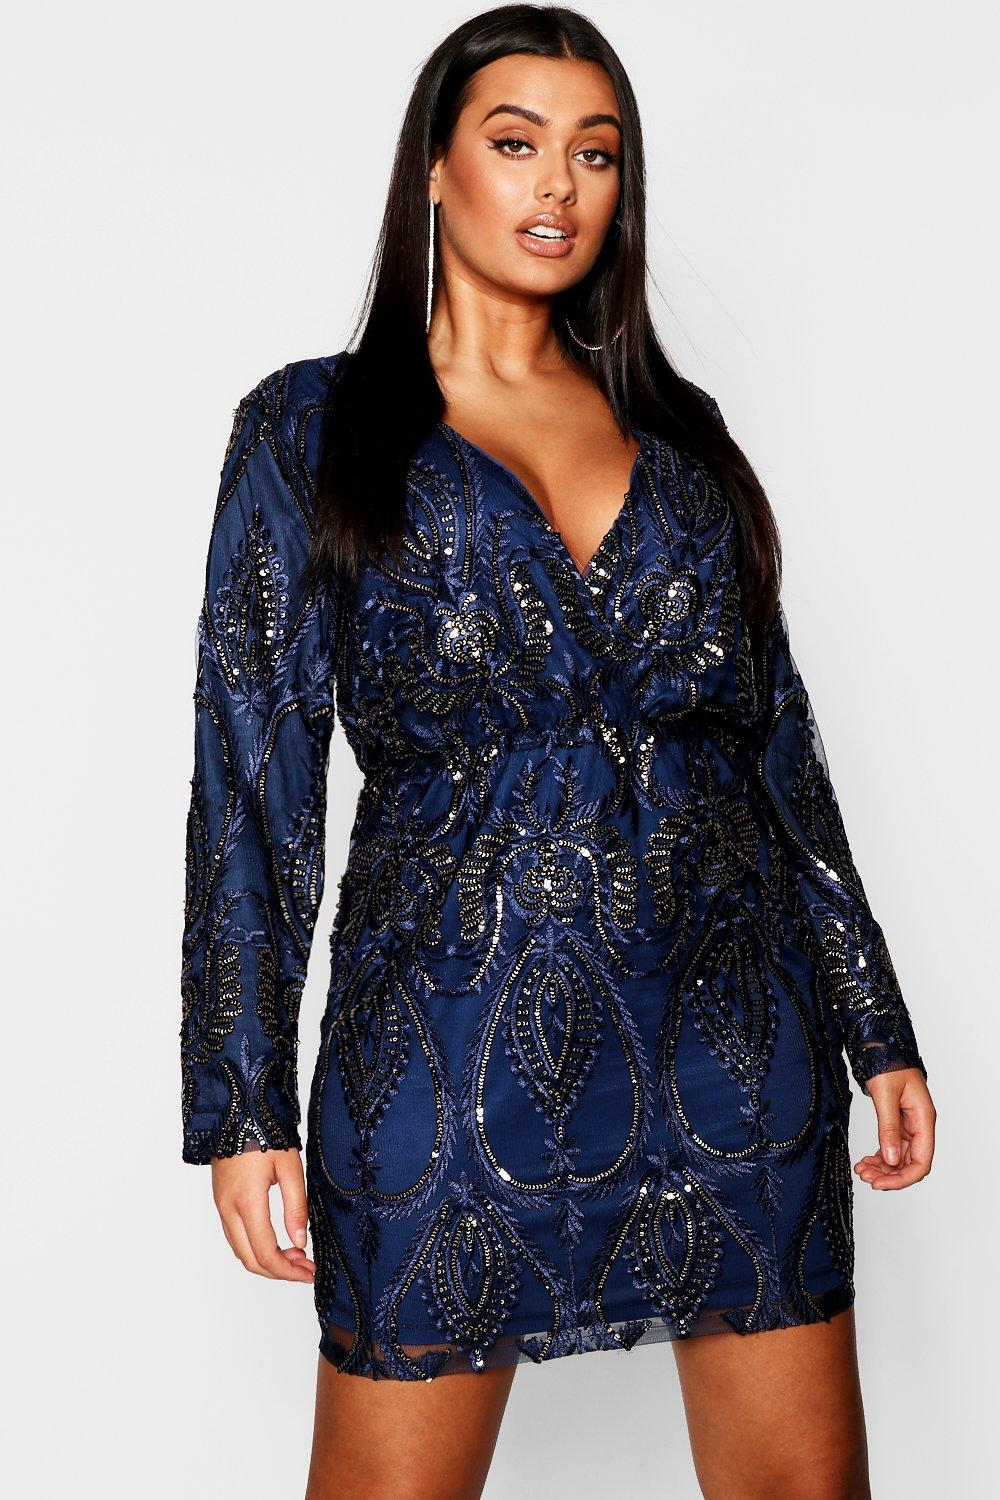 60s 70s Plus Size Dresses, Clothing, Costumes Womens Plus Lace  Sequin Plunge Mini Dress - navy - 16 $36.00 AT vintagedancer.com